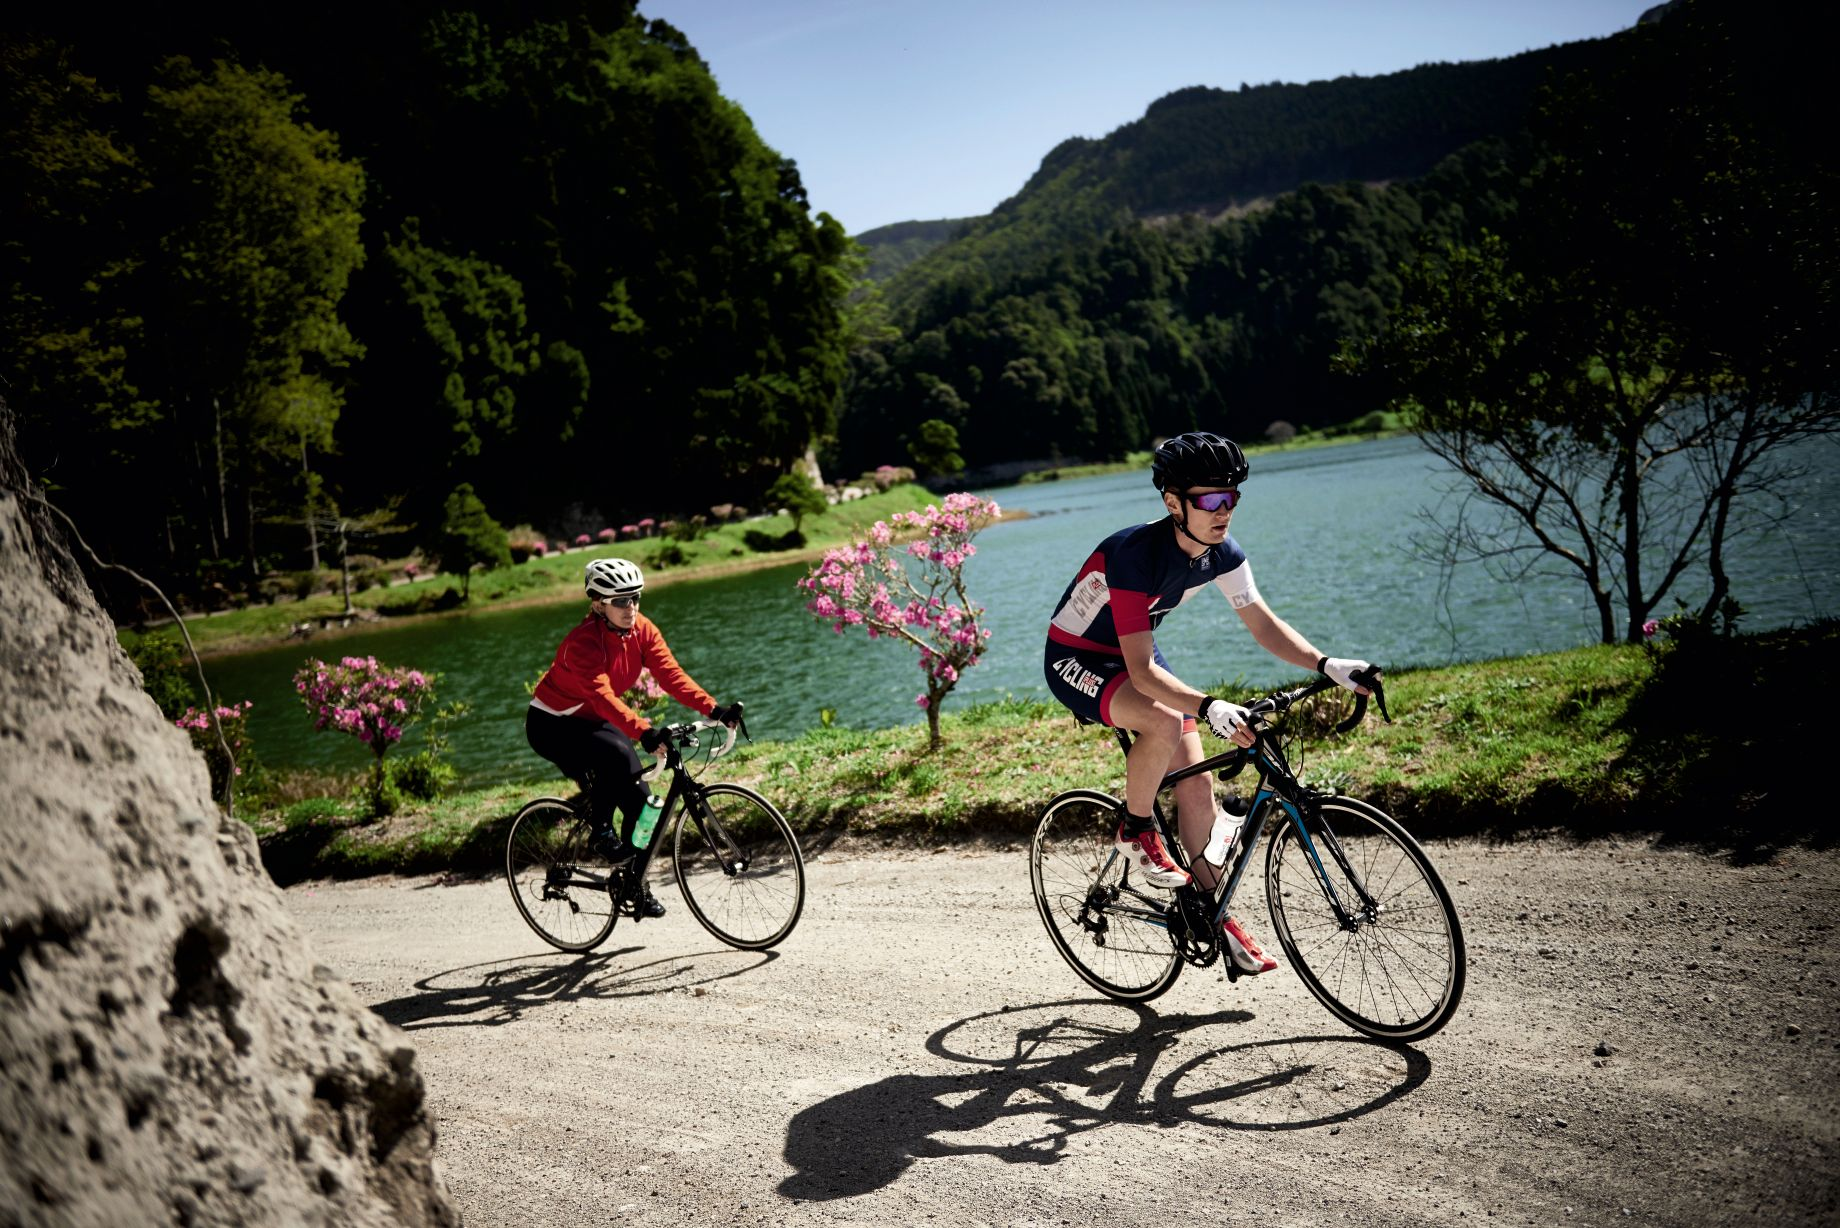 Two cyclists riding in the Azores with a lakeland background